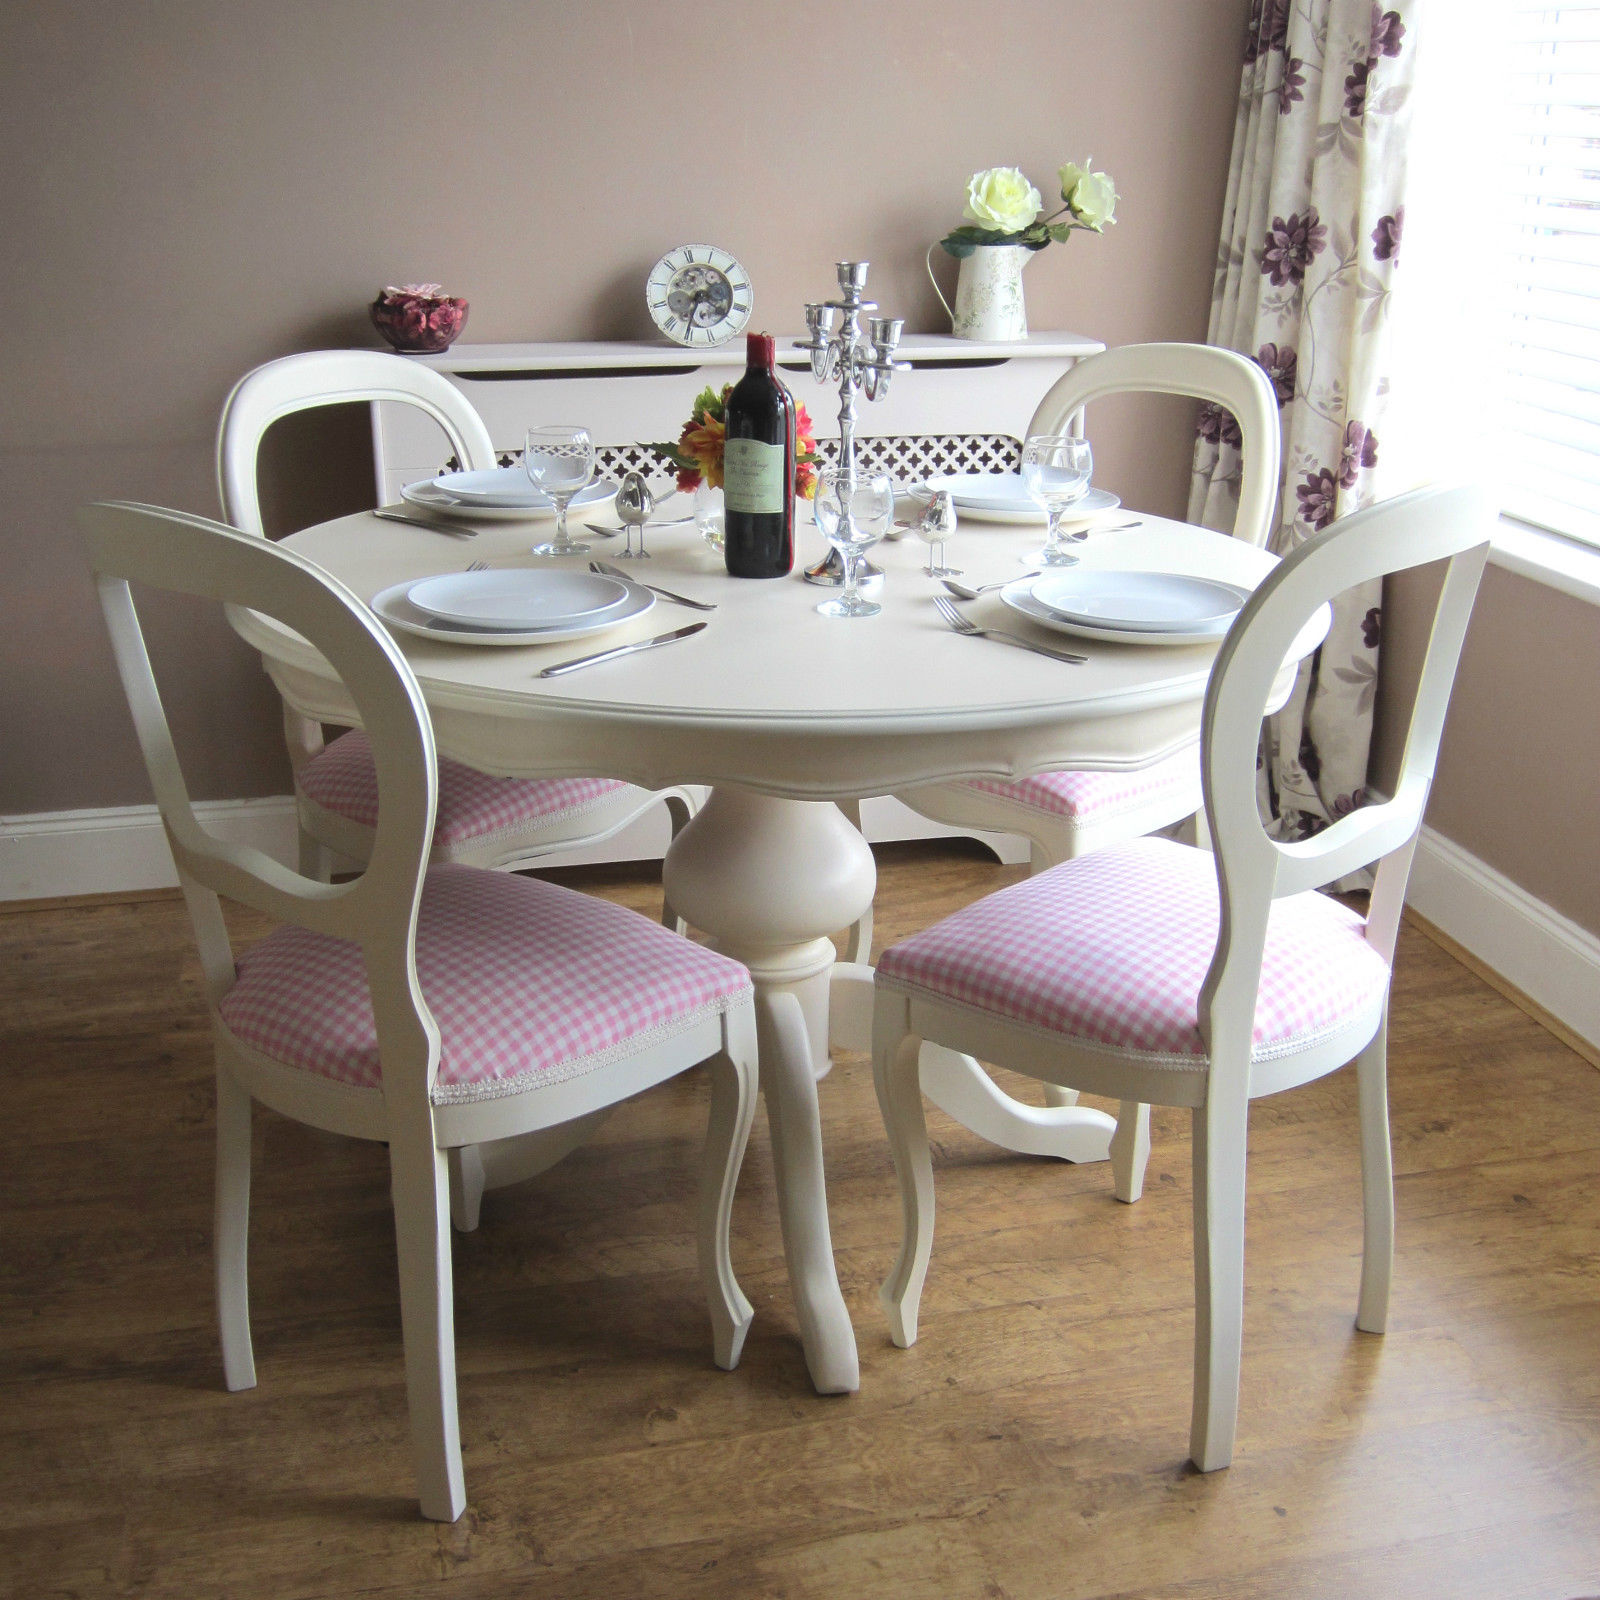 White Round Dining Table Set round kitchen tables. wood round kitchen table photo 5. amazing